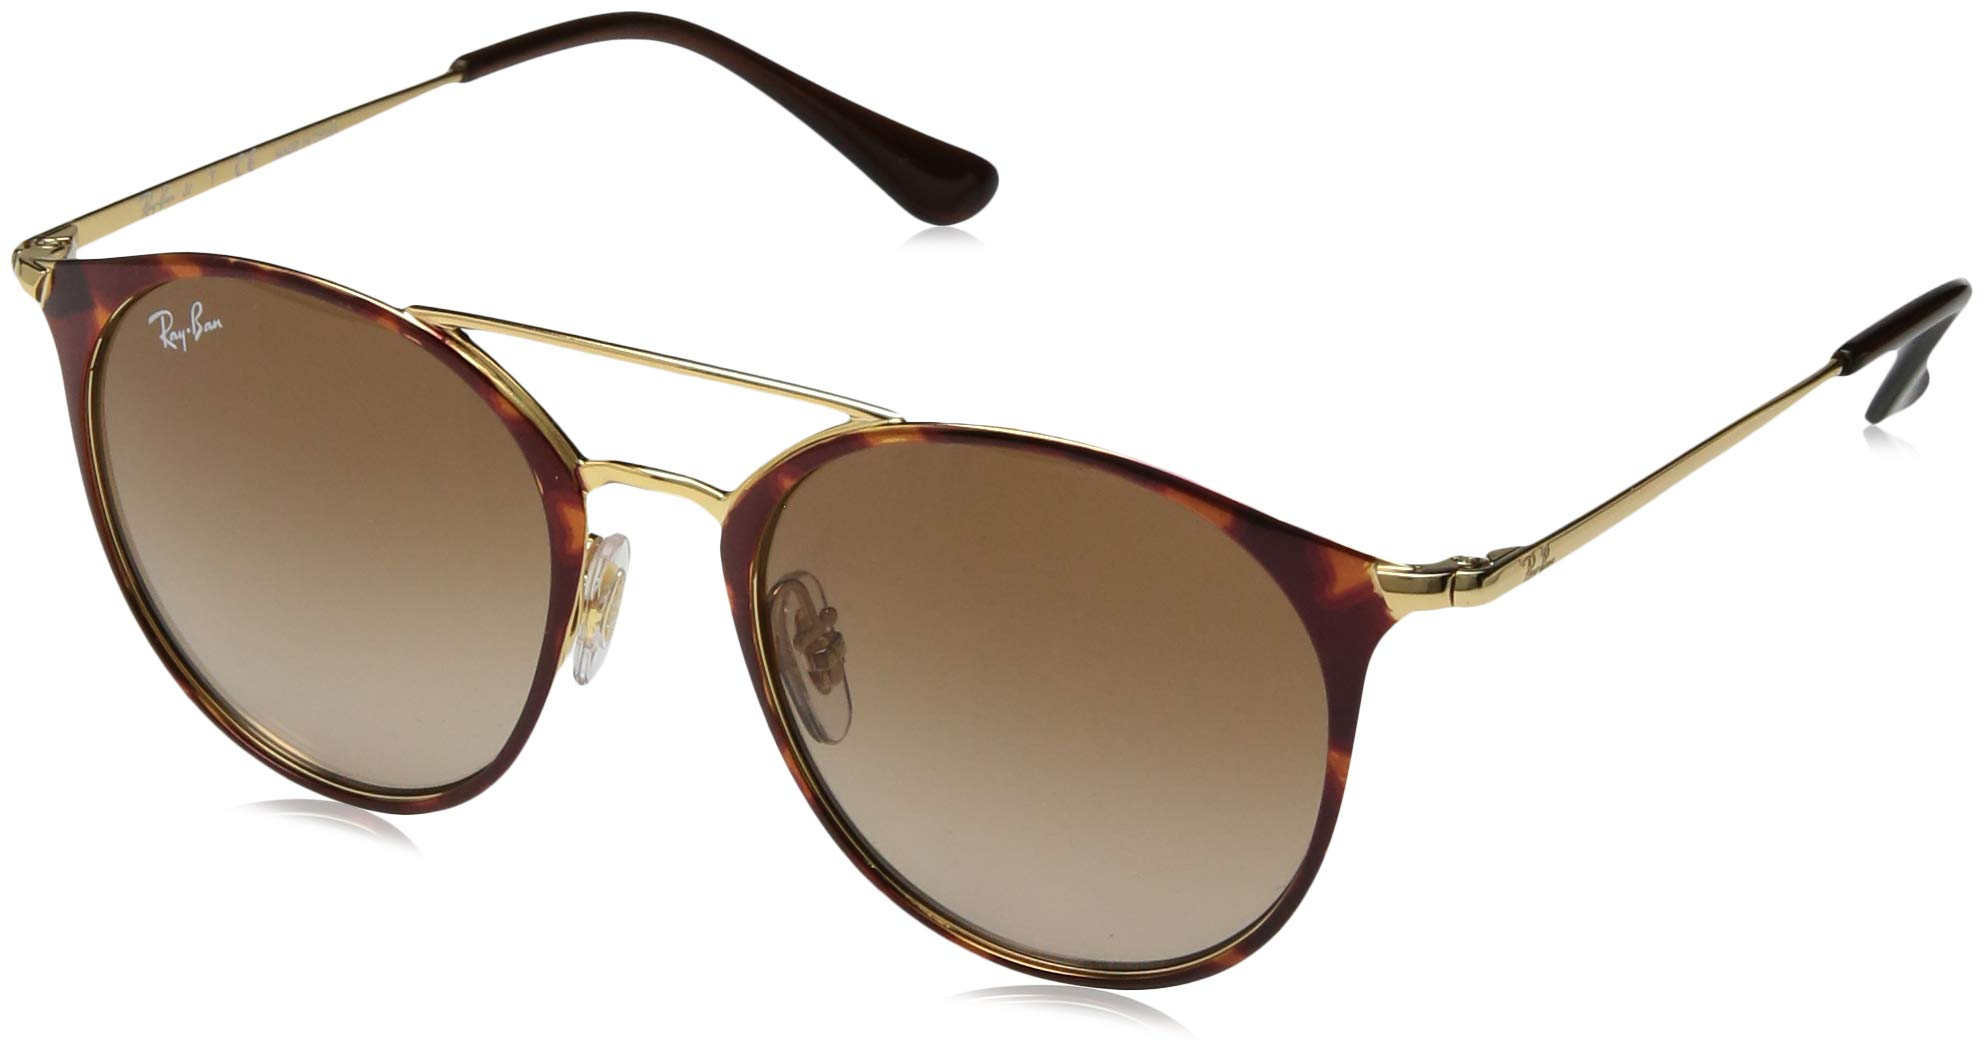 Ray-Ban Girls' 0rj9545s Round Sunglasses GOLD ON TOP HAVANA 50.8 mm